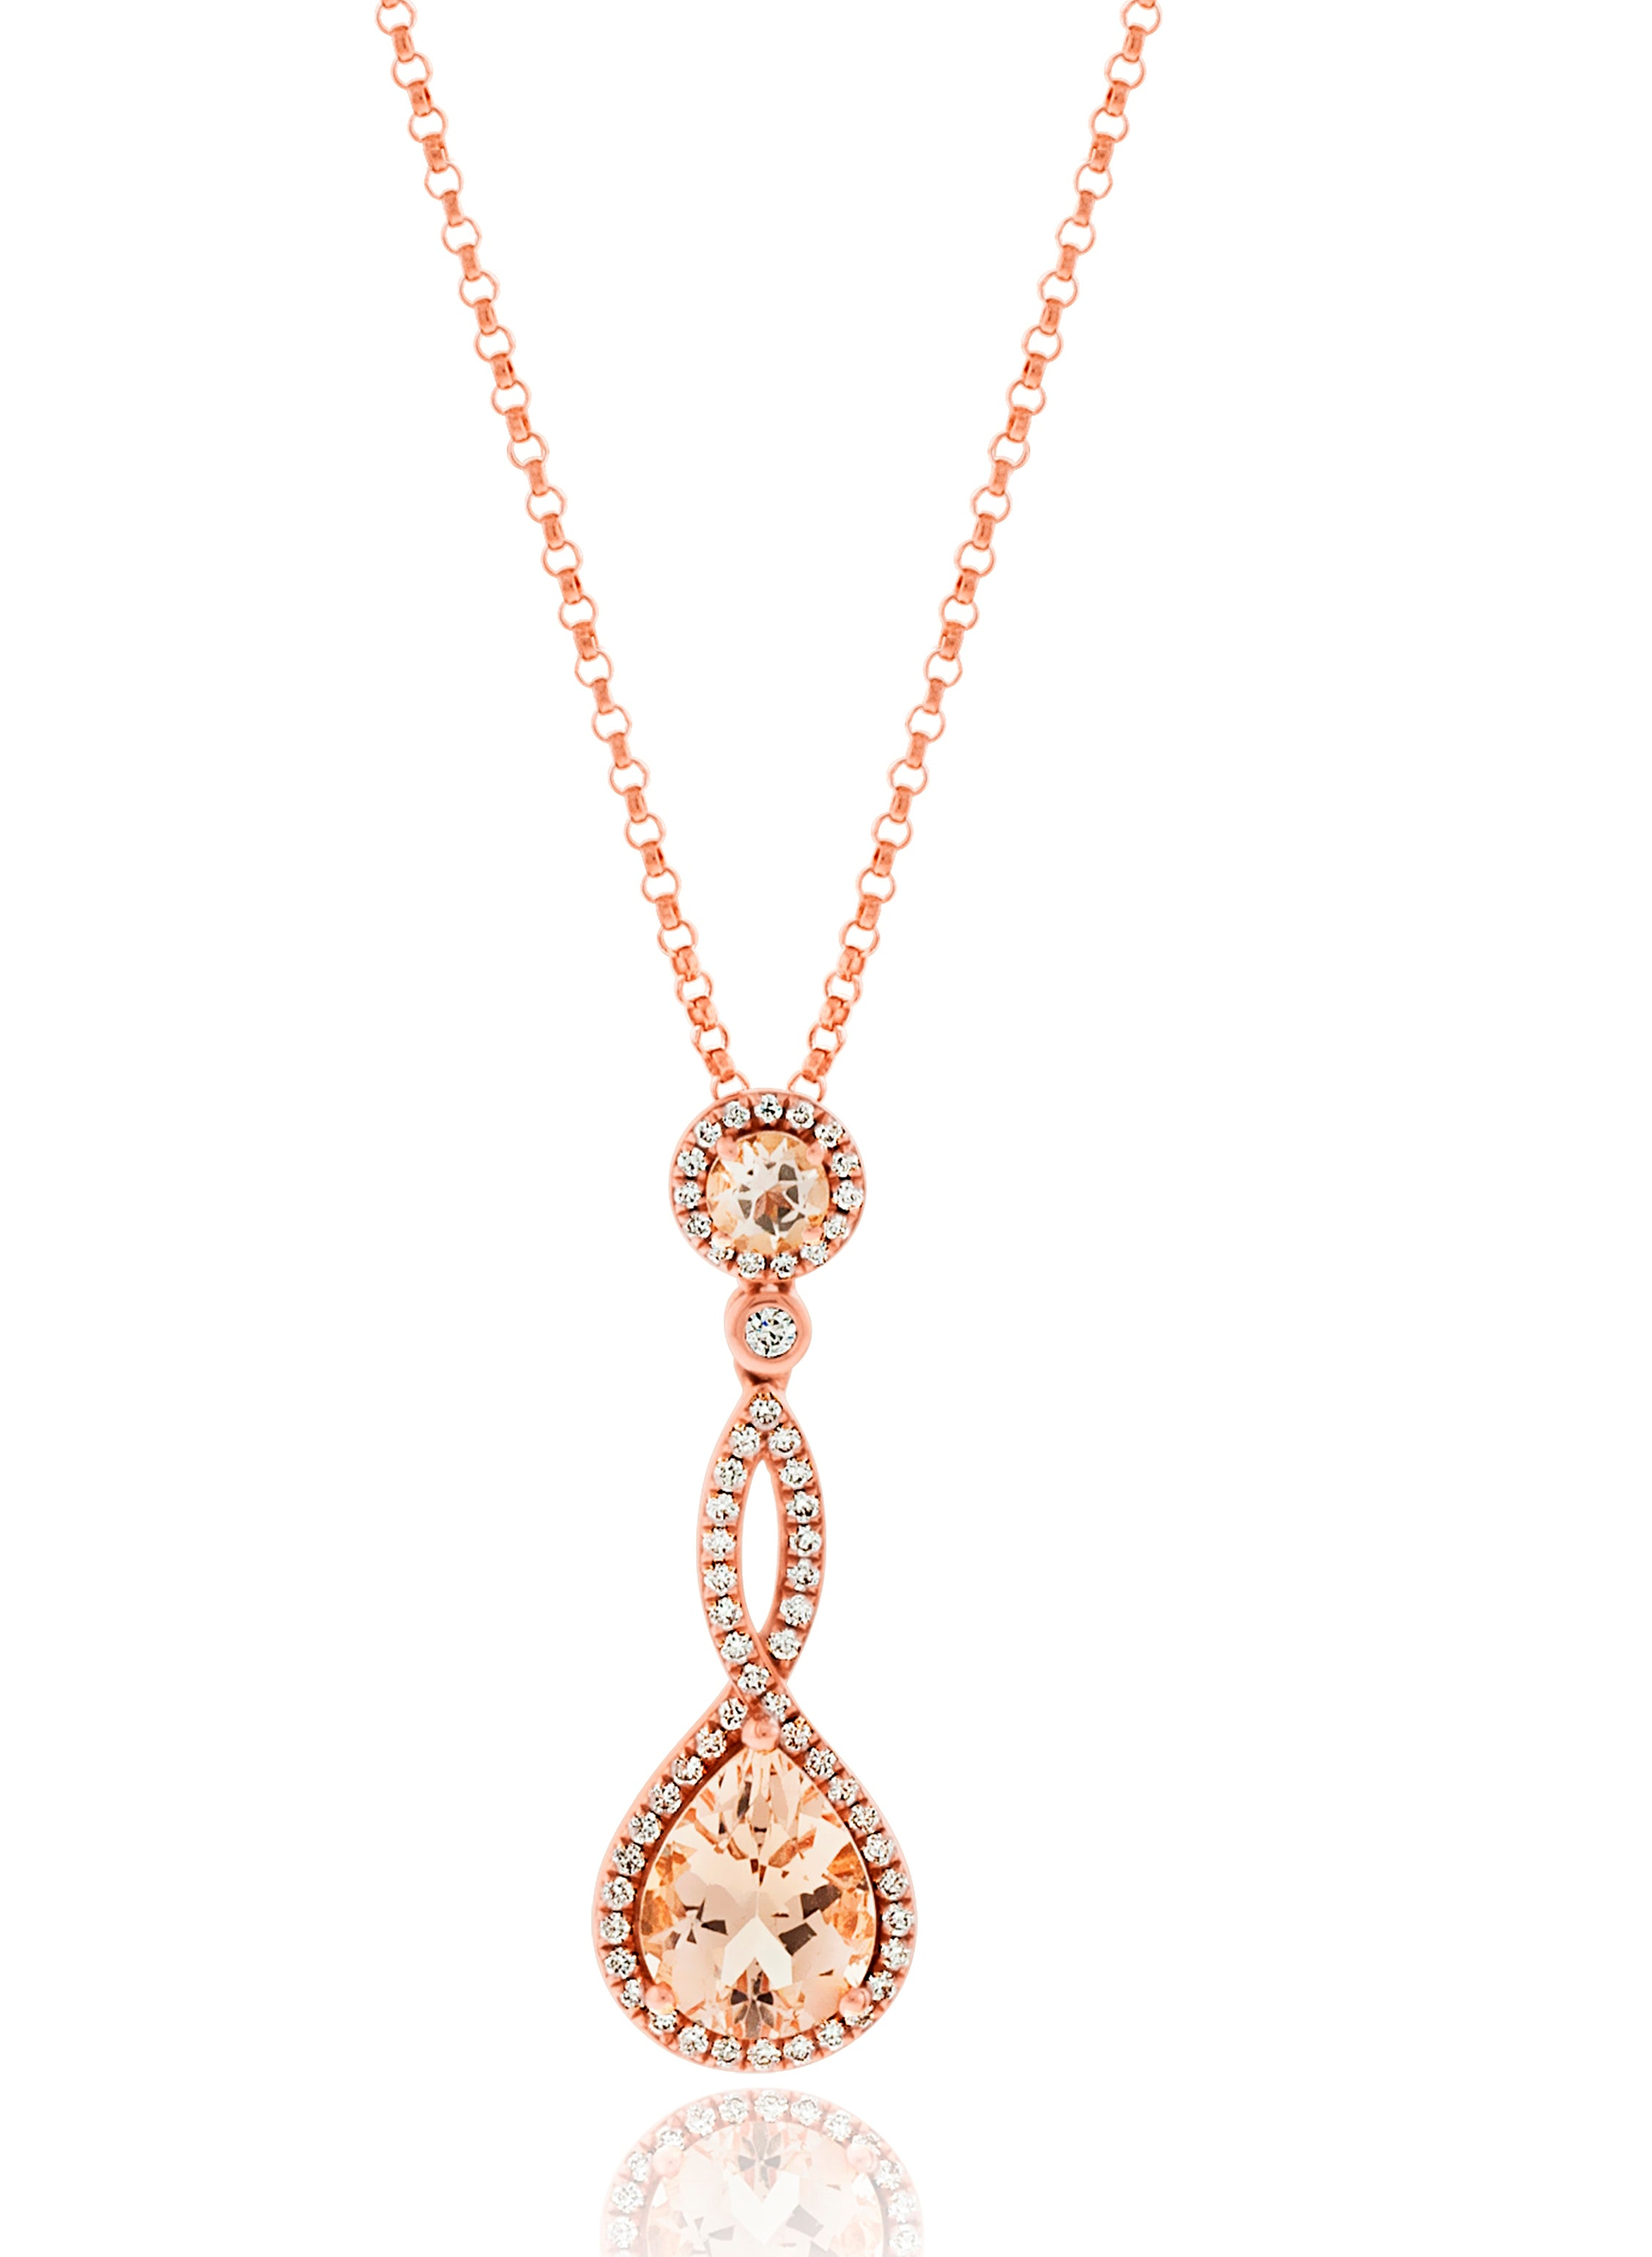 alexis gold rose necklace gallery lyst jewelry crystal swarovski peach morganite product pendant doublet bittar